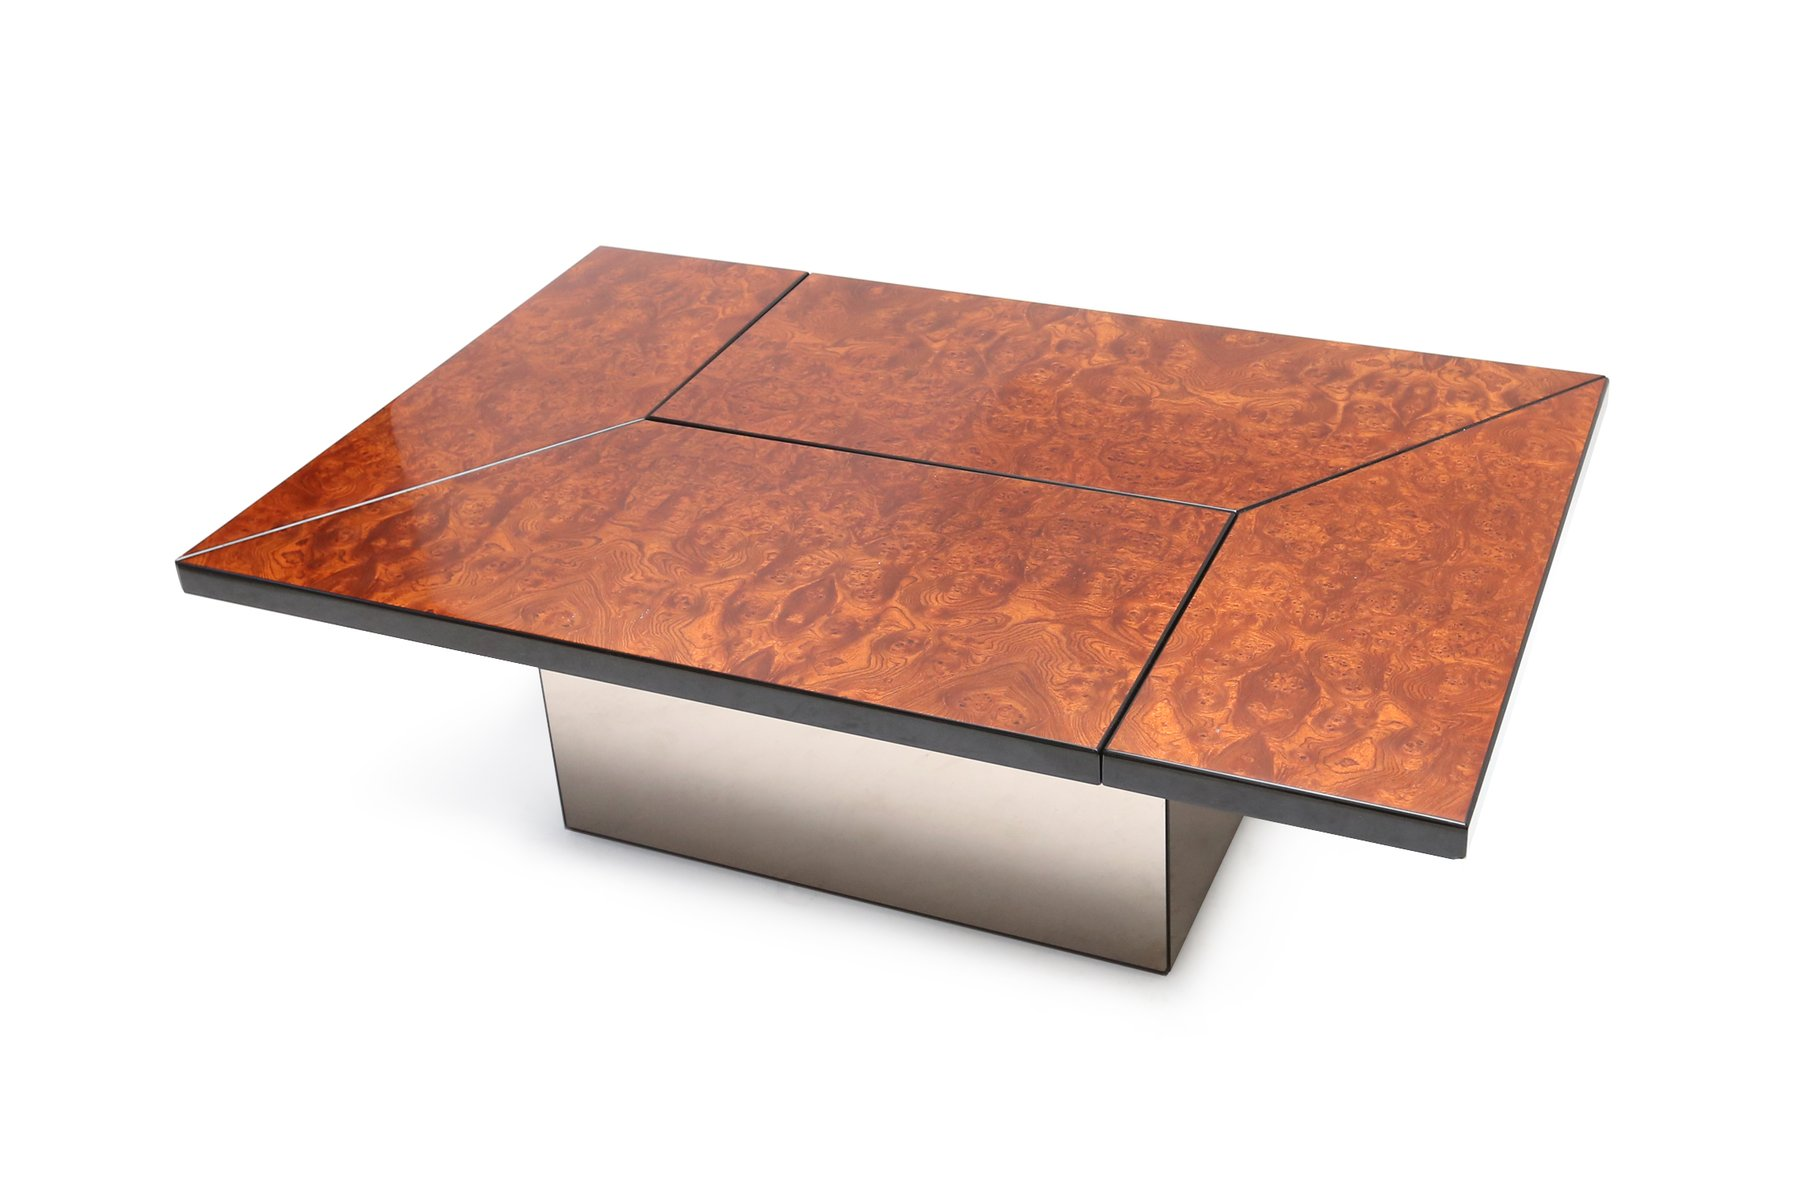 Burl Bar Coffee Table by Paul Michel 1970s for sale at Pamono